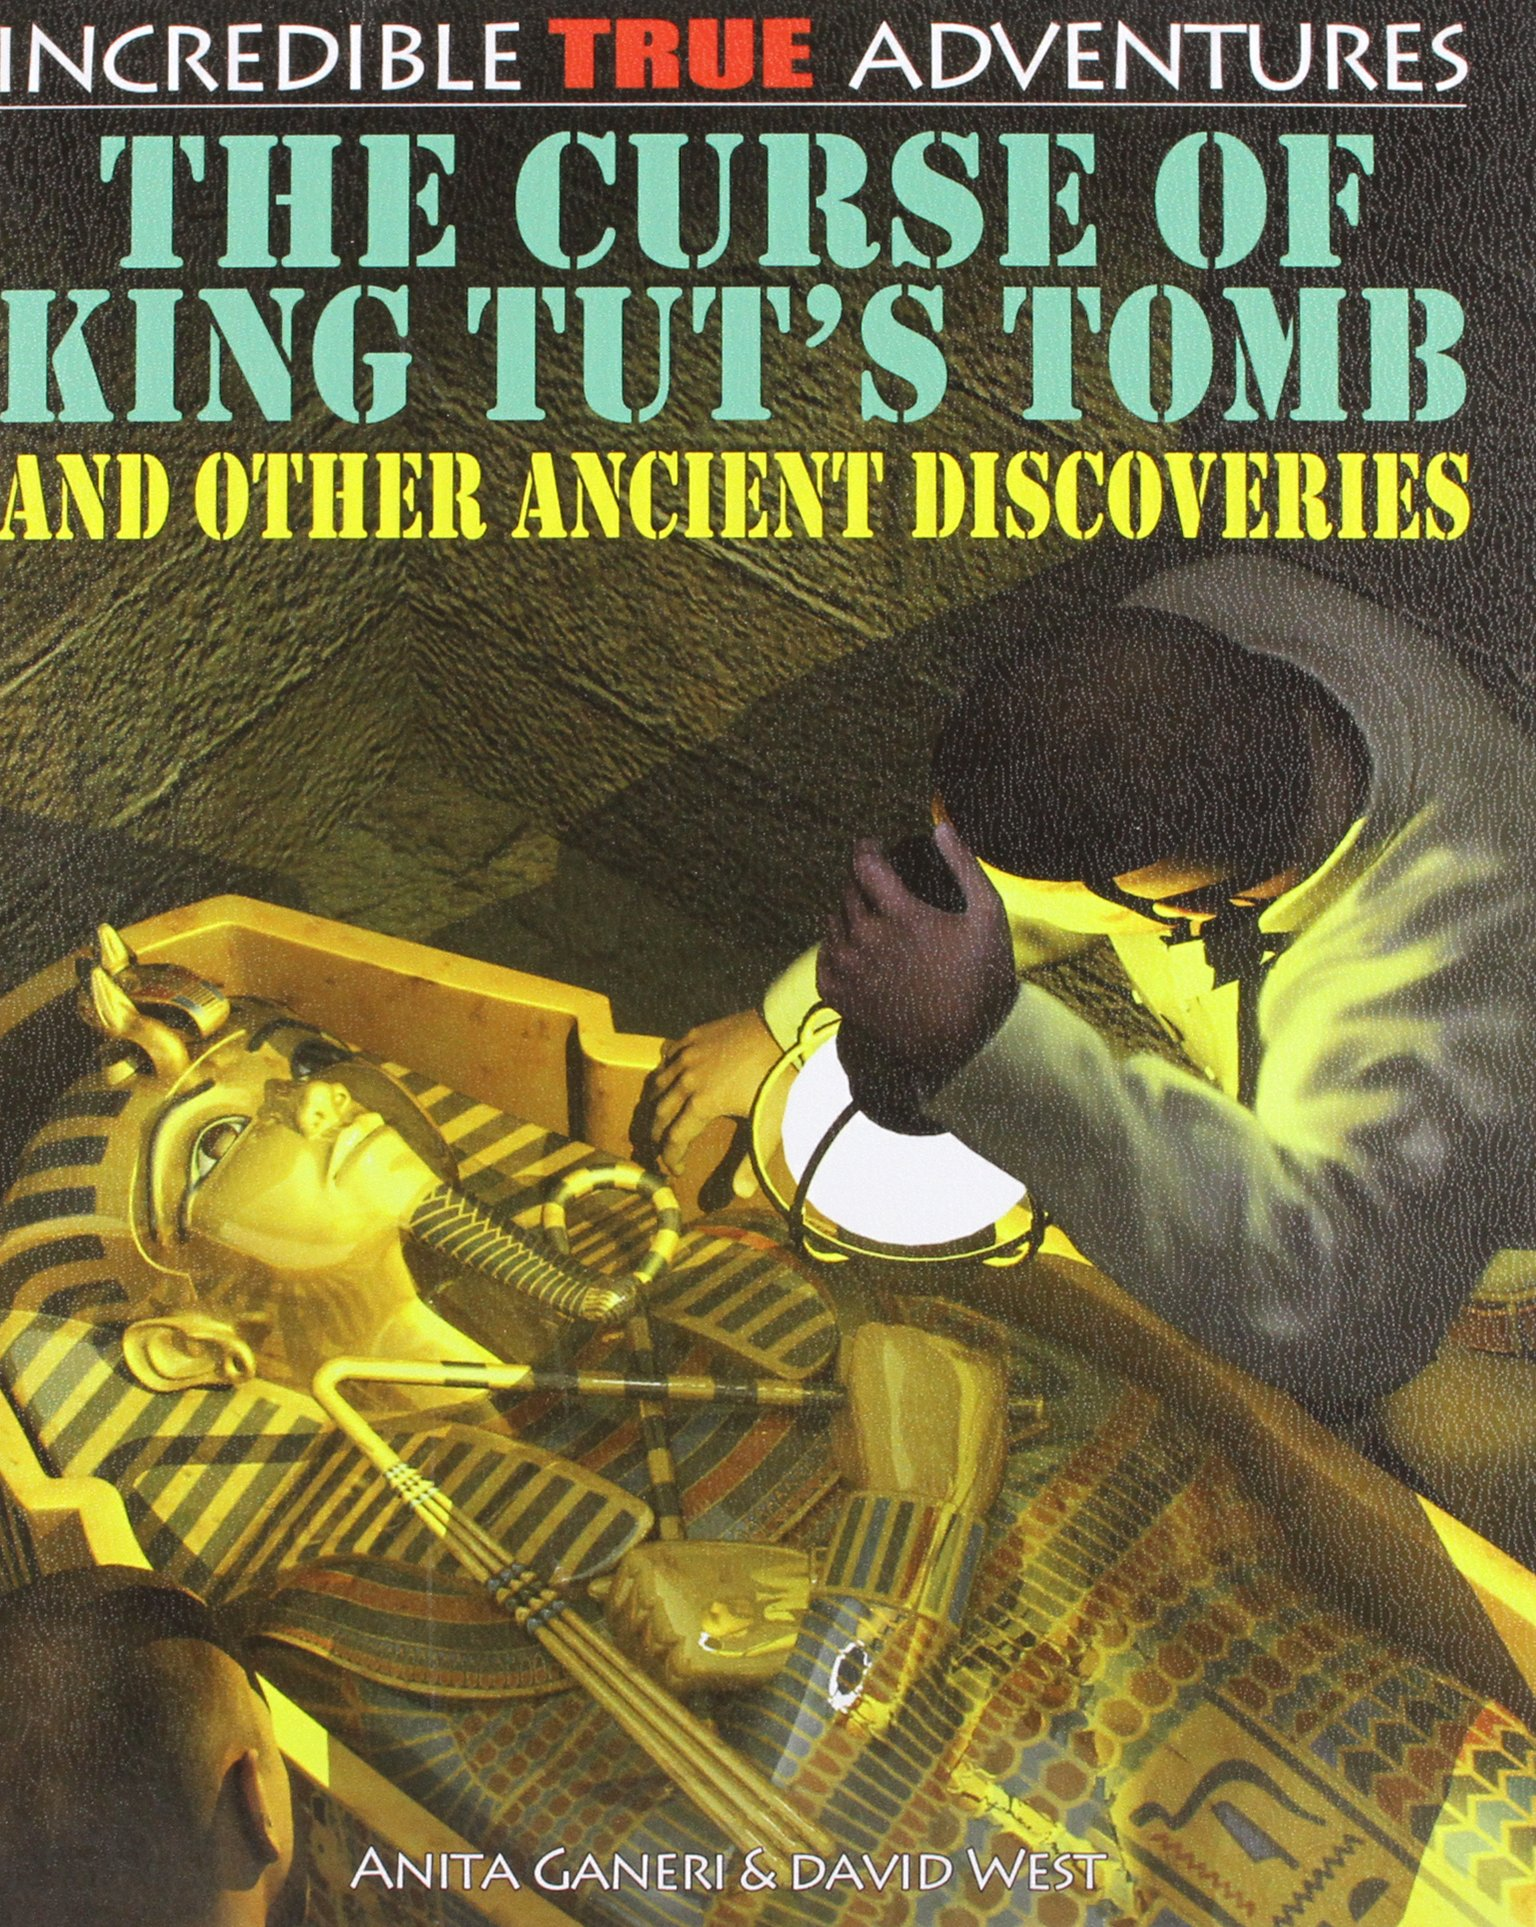 The Curse of King Tut's Tomb and Other Ancient Discoveries (Incredible True Adventures)